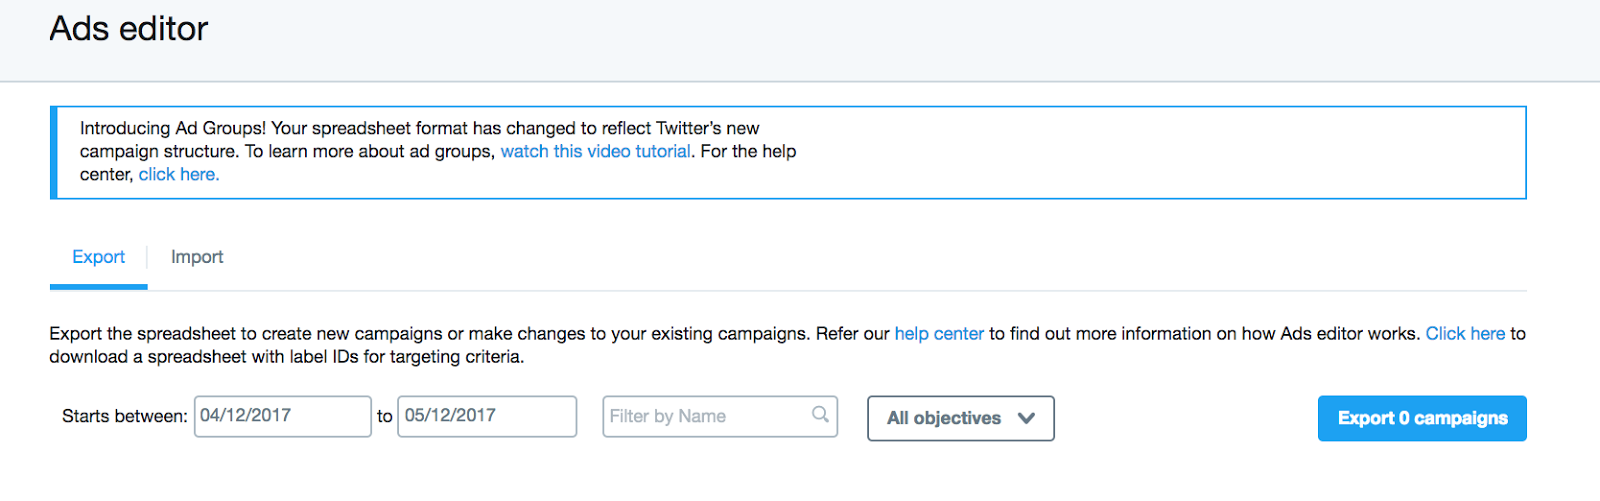 Twitter recently introduced a new Ad Groups format.